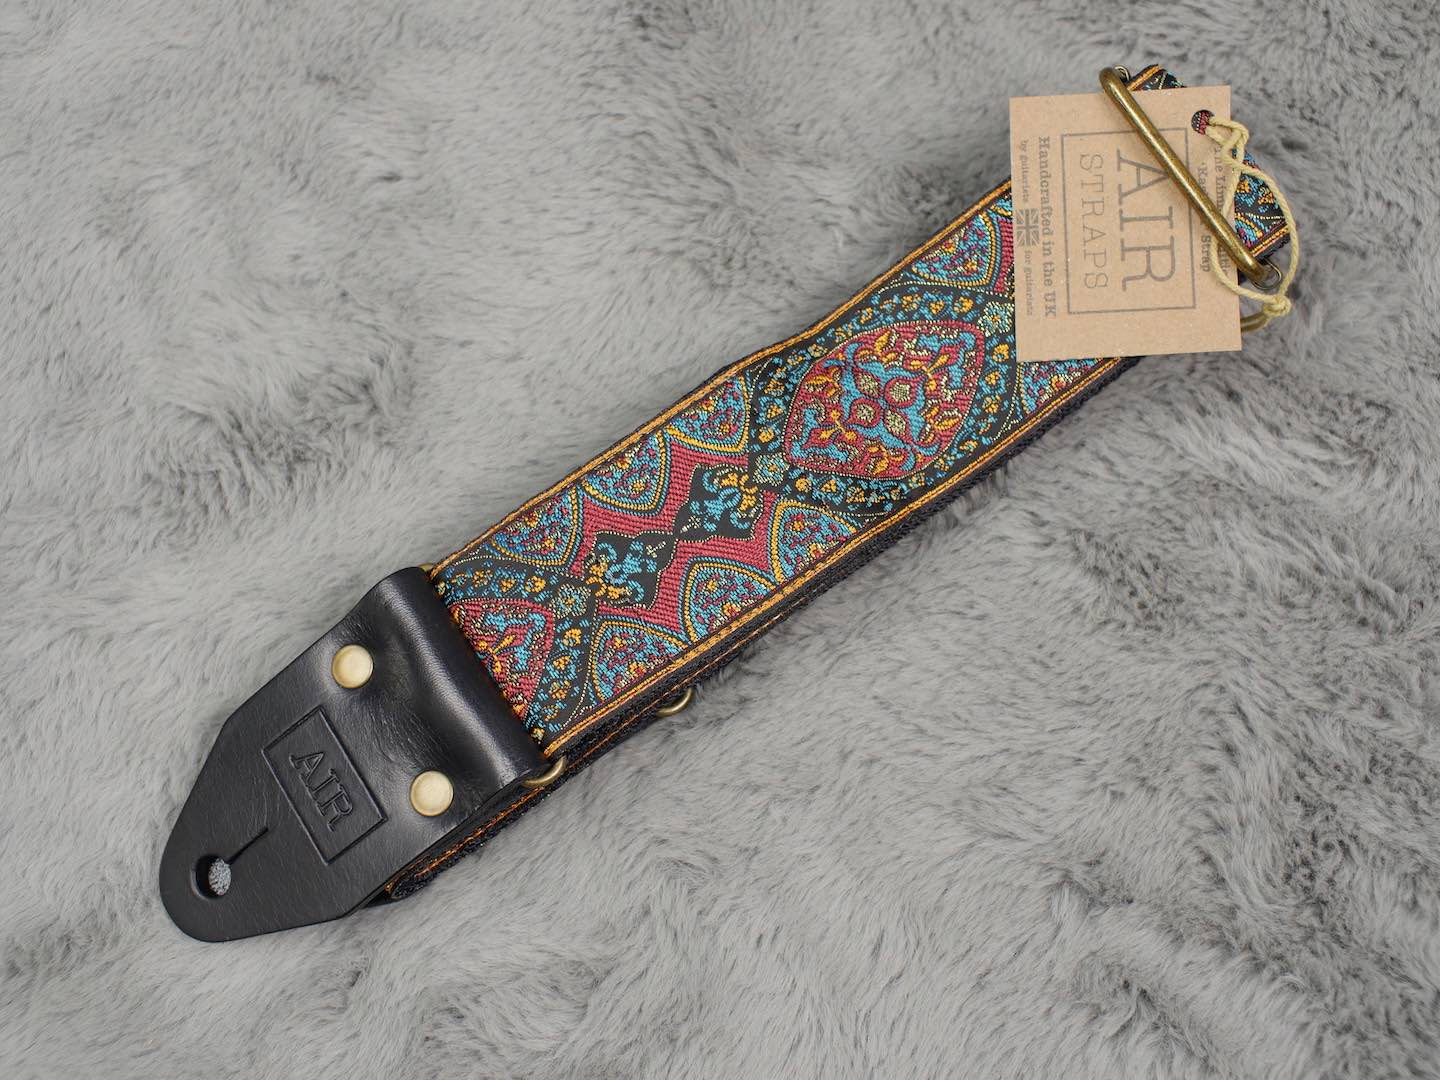 Air Straps Limited Edition 'Kashmir' Guitar Strap - Free Shipping!